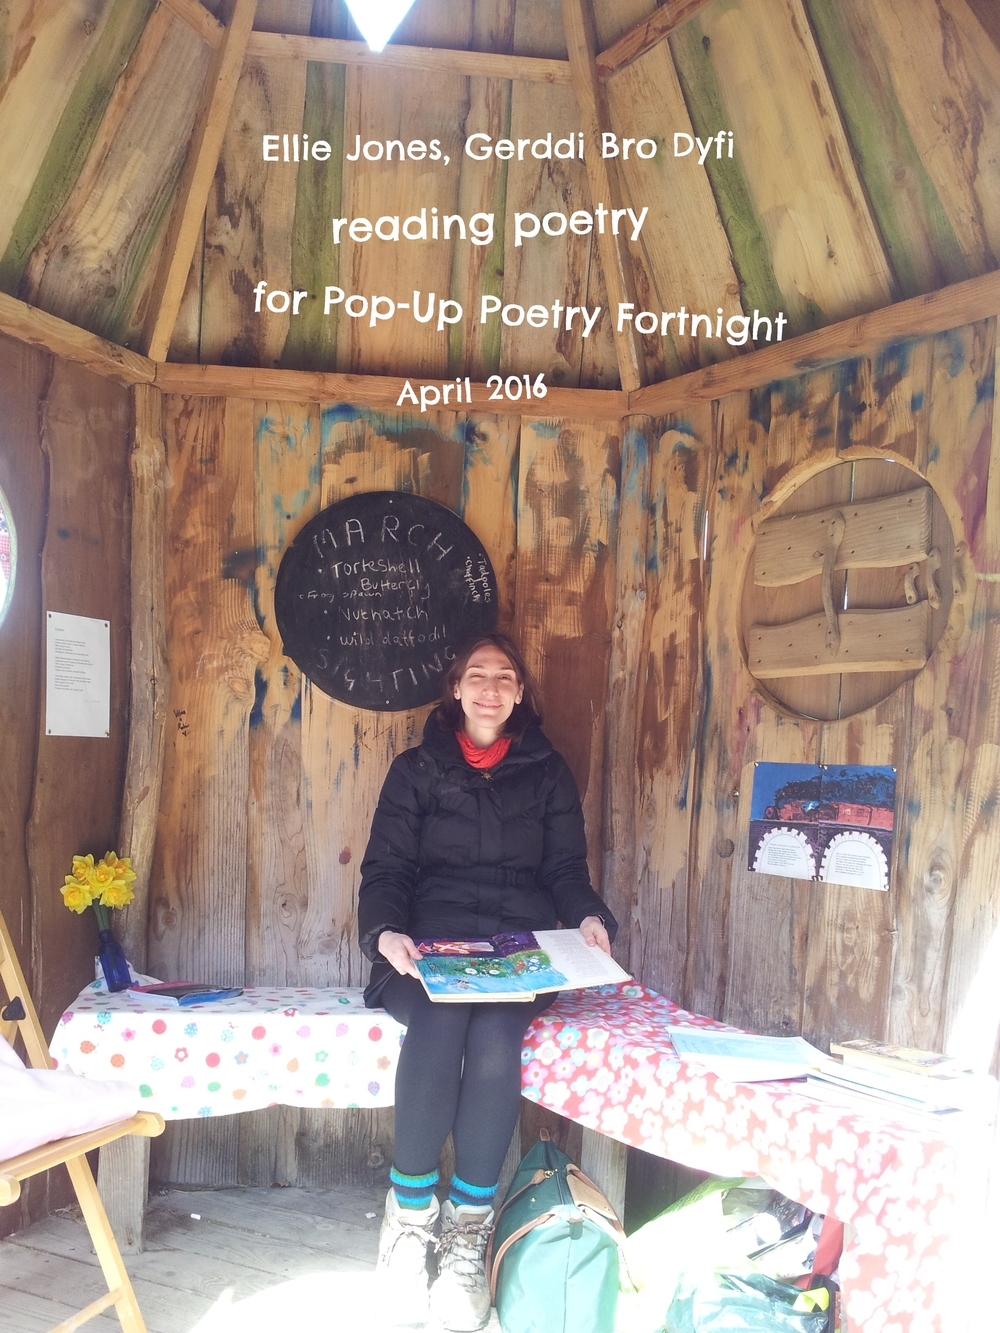 Pop-Up Poetry Fortnight 2016